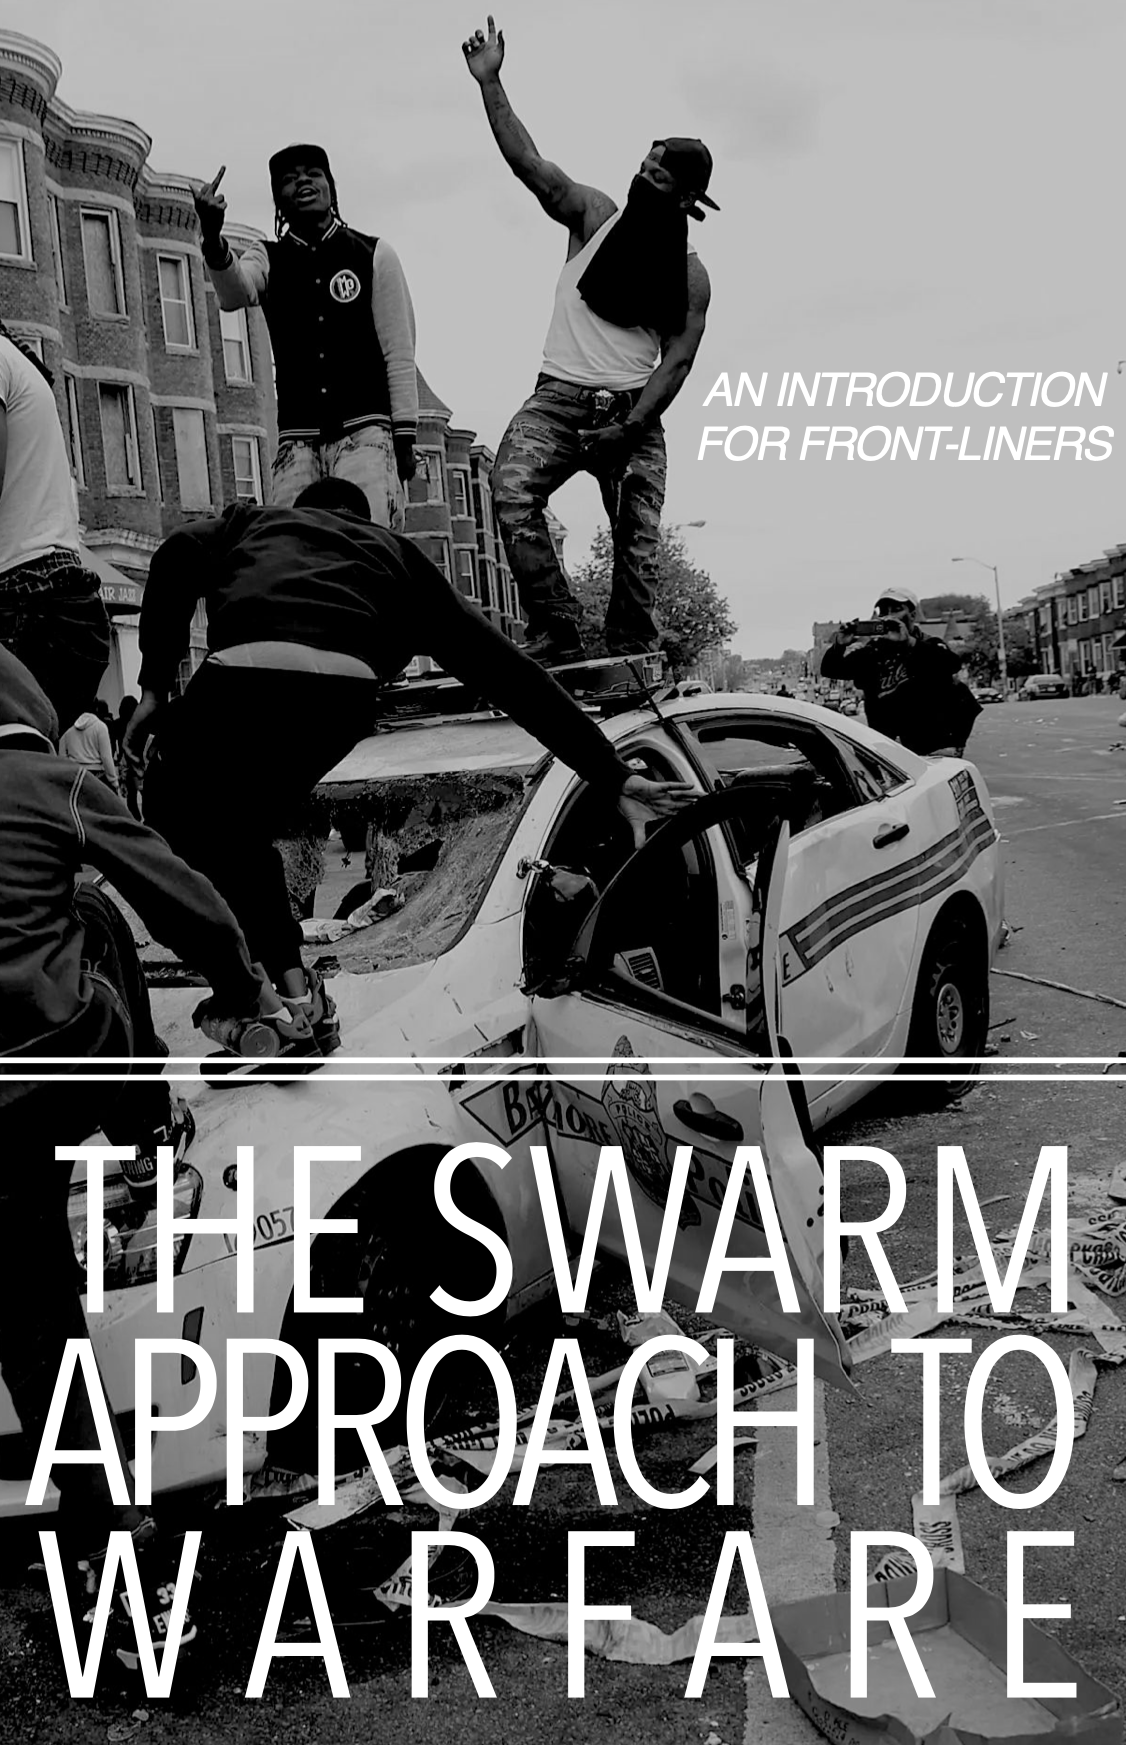 Cover Image for The Swarm Approach to Warfare: an Introduction for Frontliners